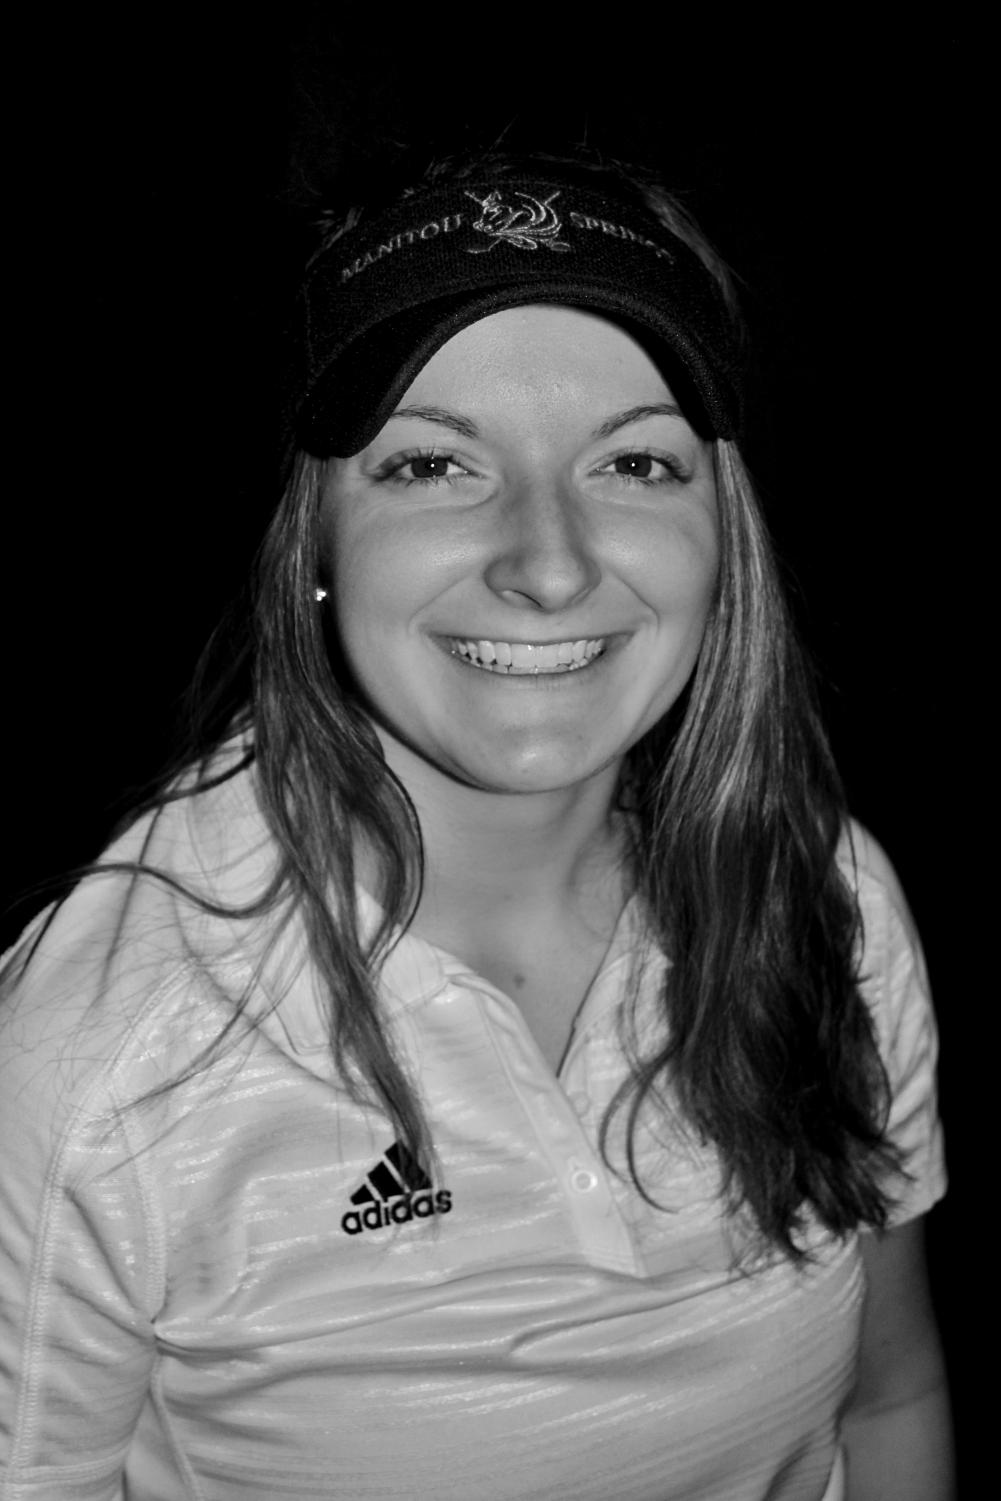 Chloe Unruh is a devoted senior golfer on MSHS's Girls' Team. This year she is leading the program with the theme of keeping a positive mindset.